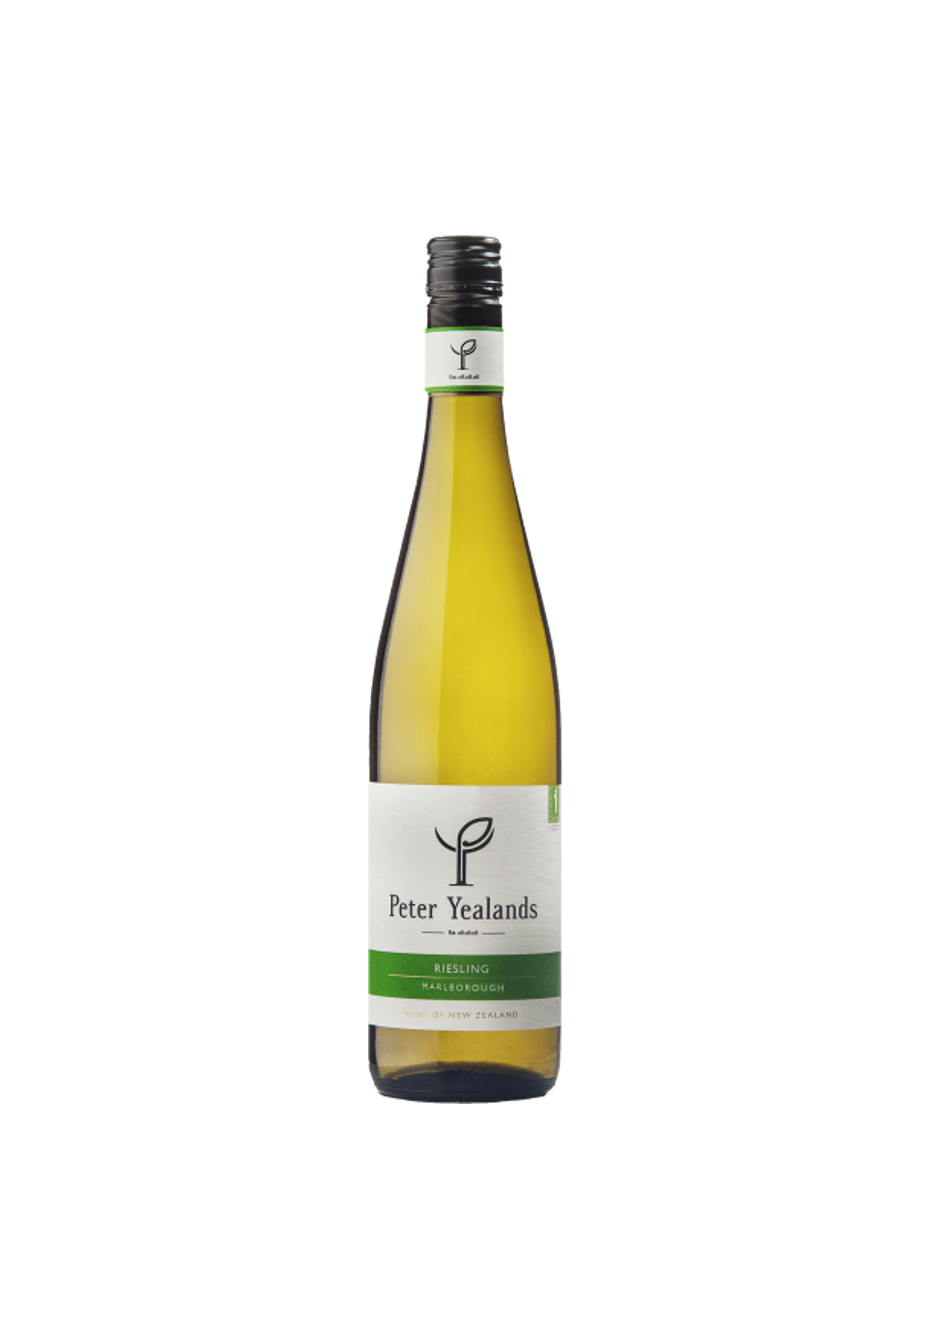 Peter Yealands Marlborough Riesling 2018